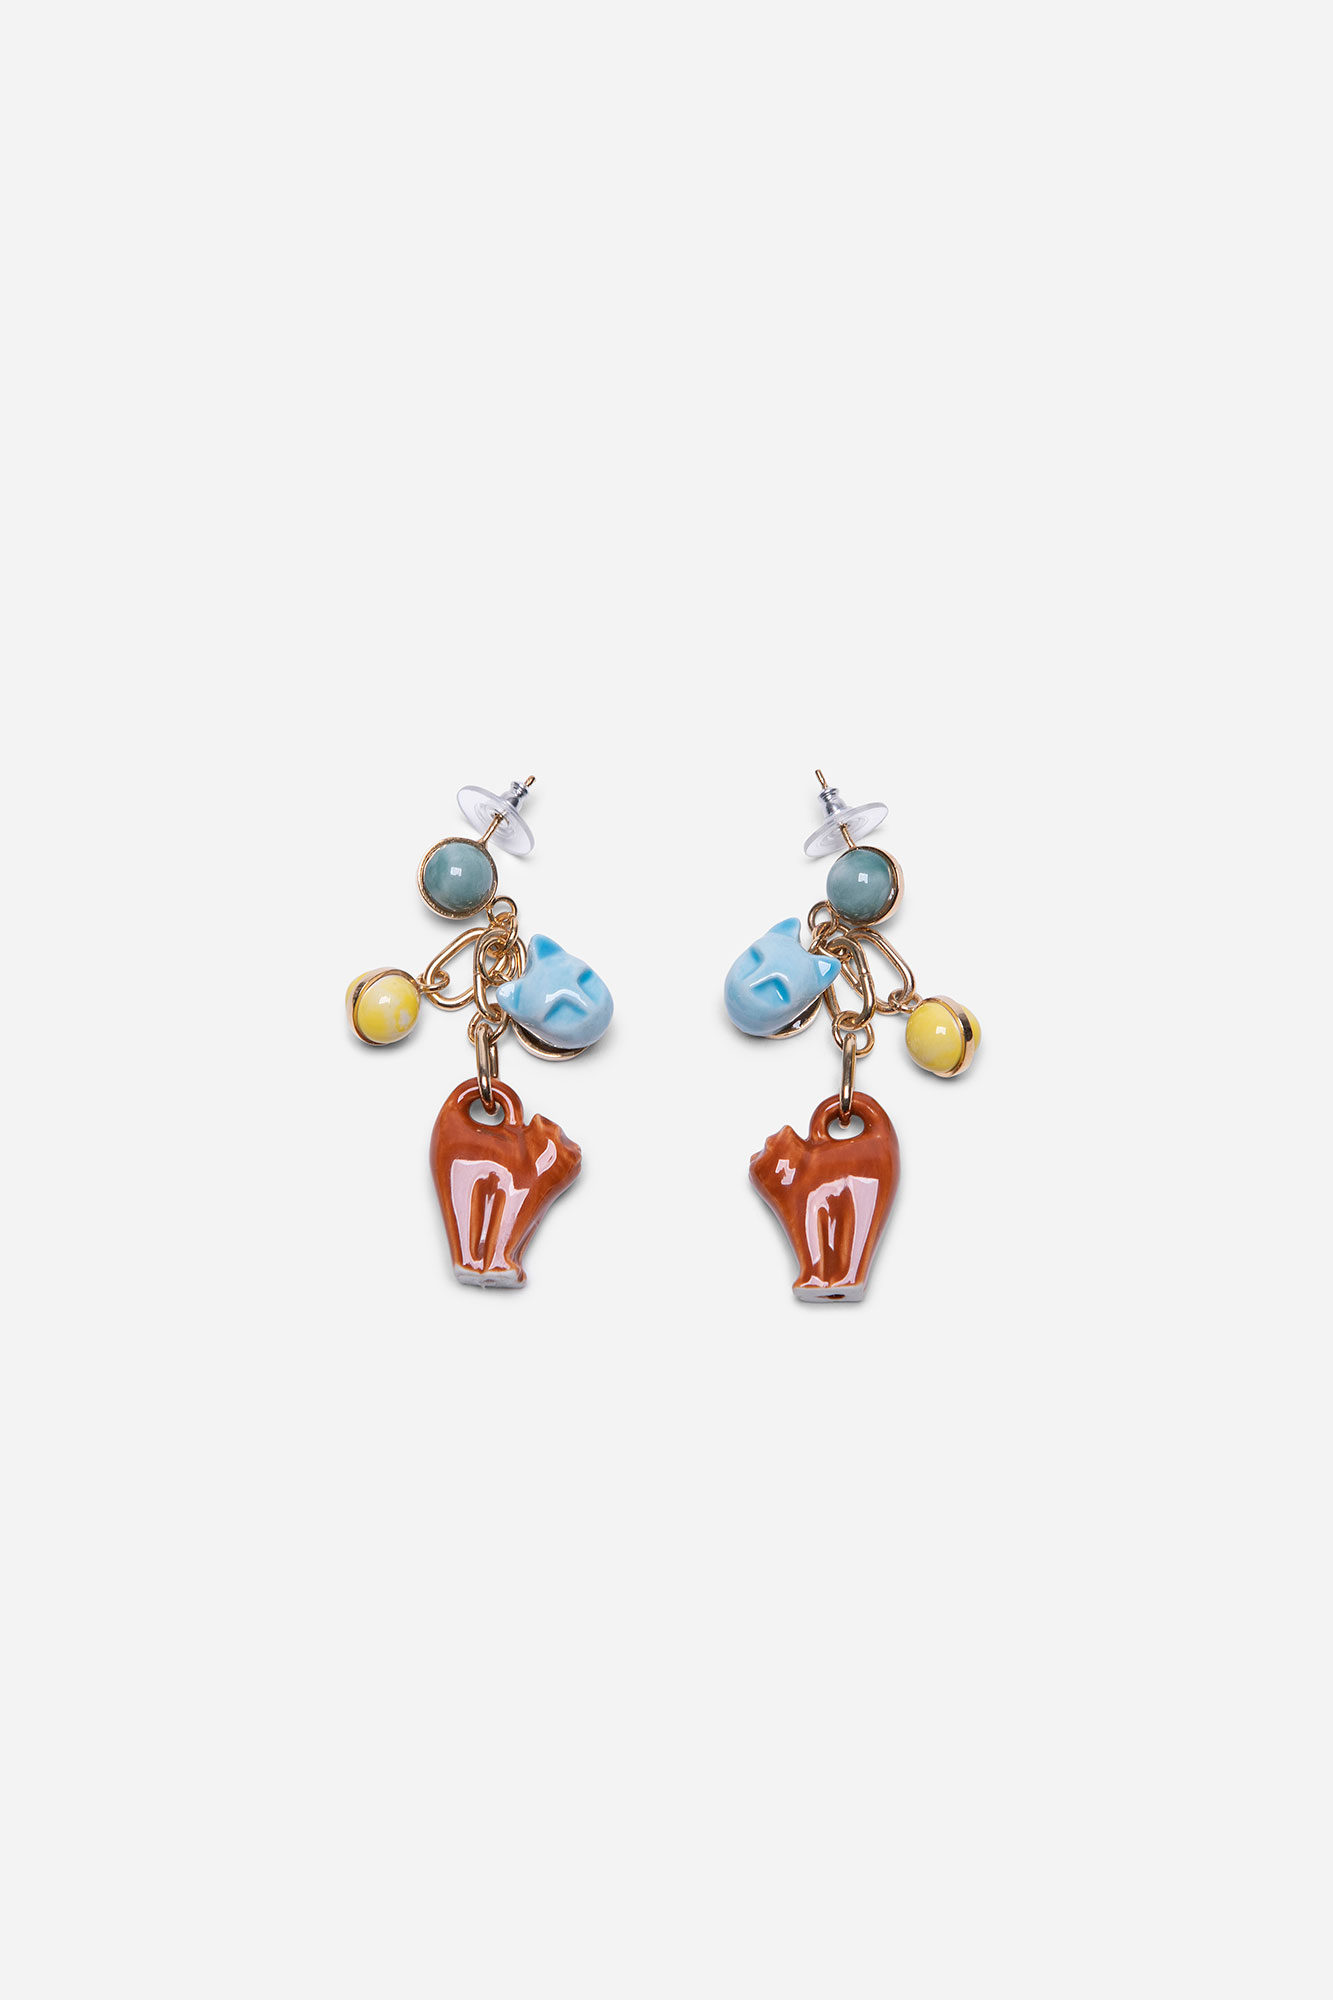 Meow Charms Earrings